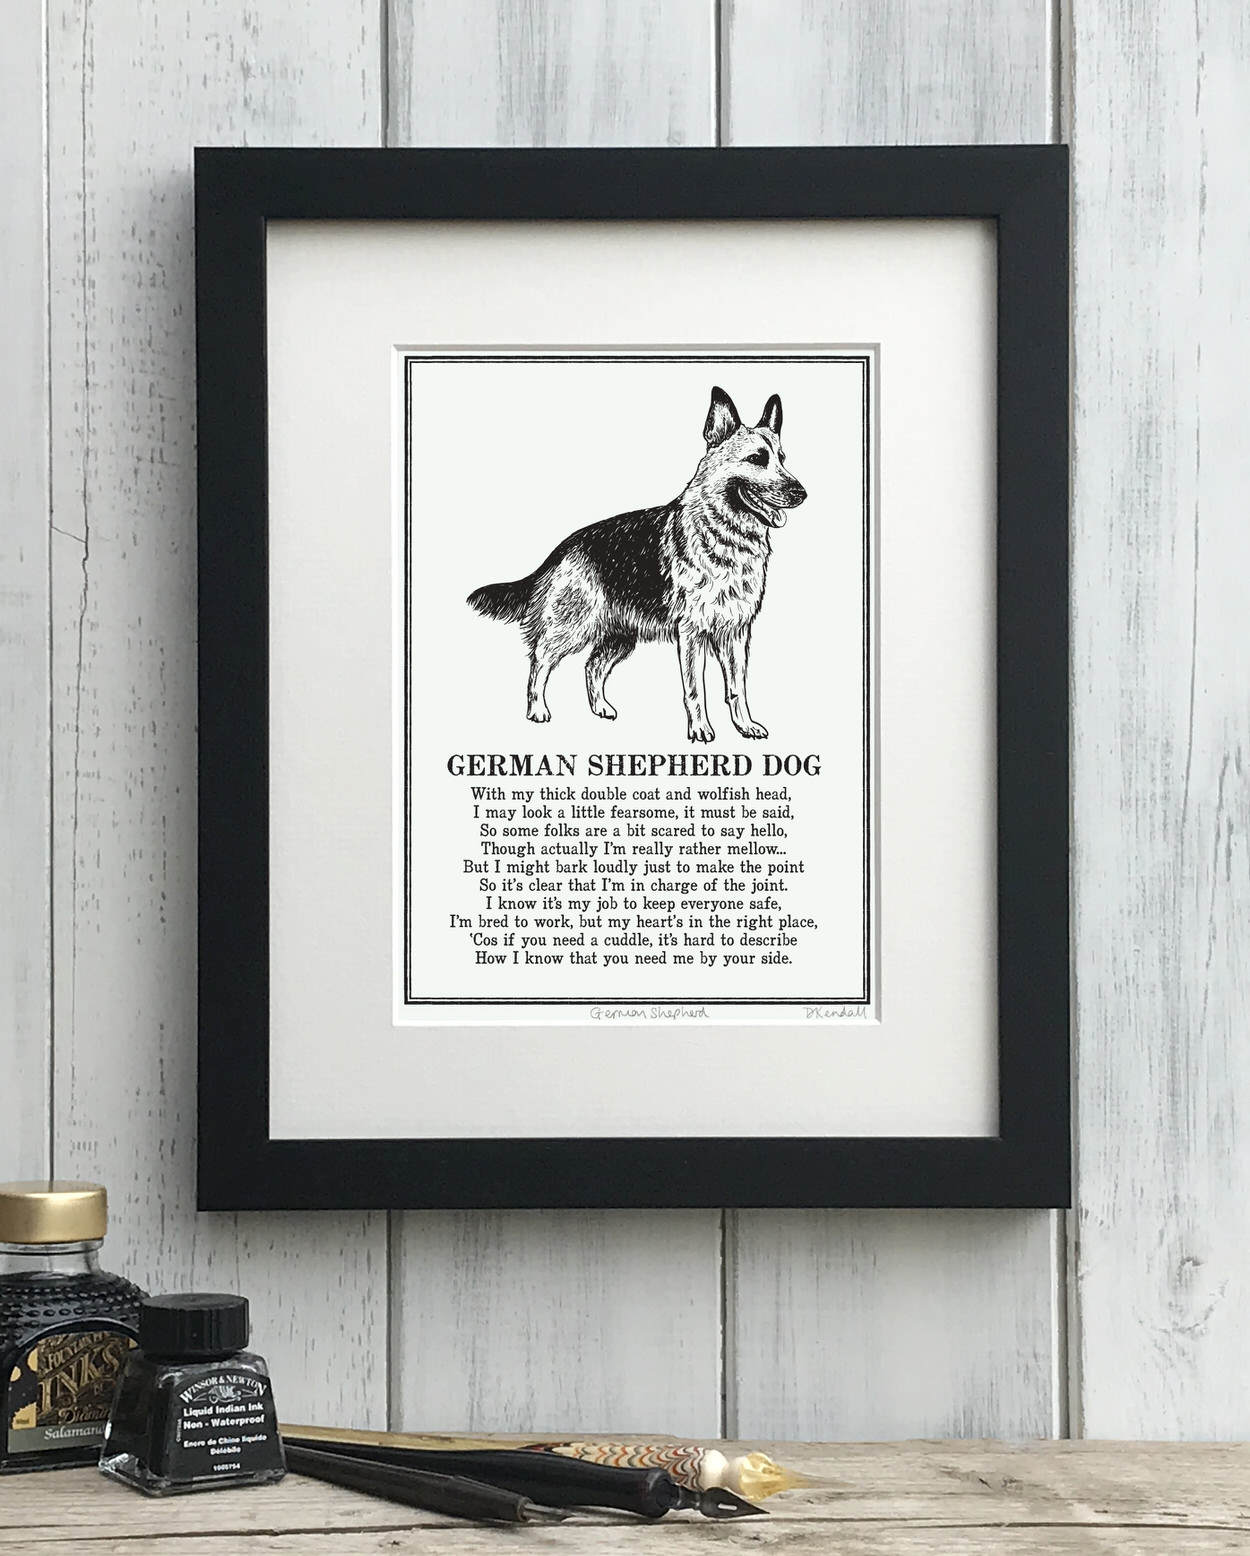 German Shepherd Dog Illustrated Poem Print | The Enlightened Hound